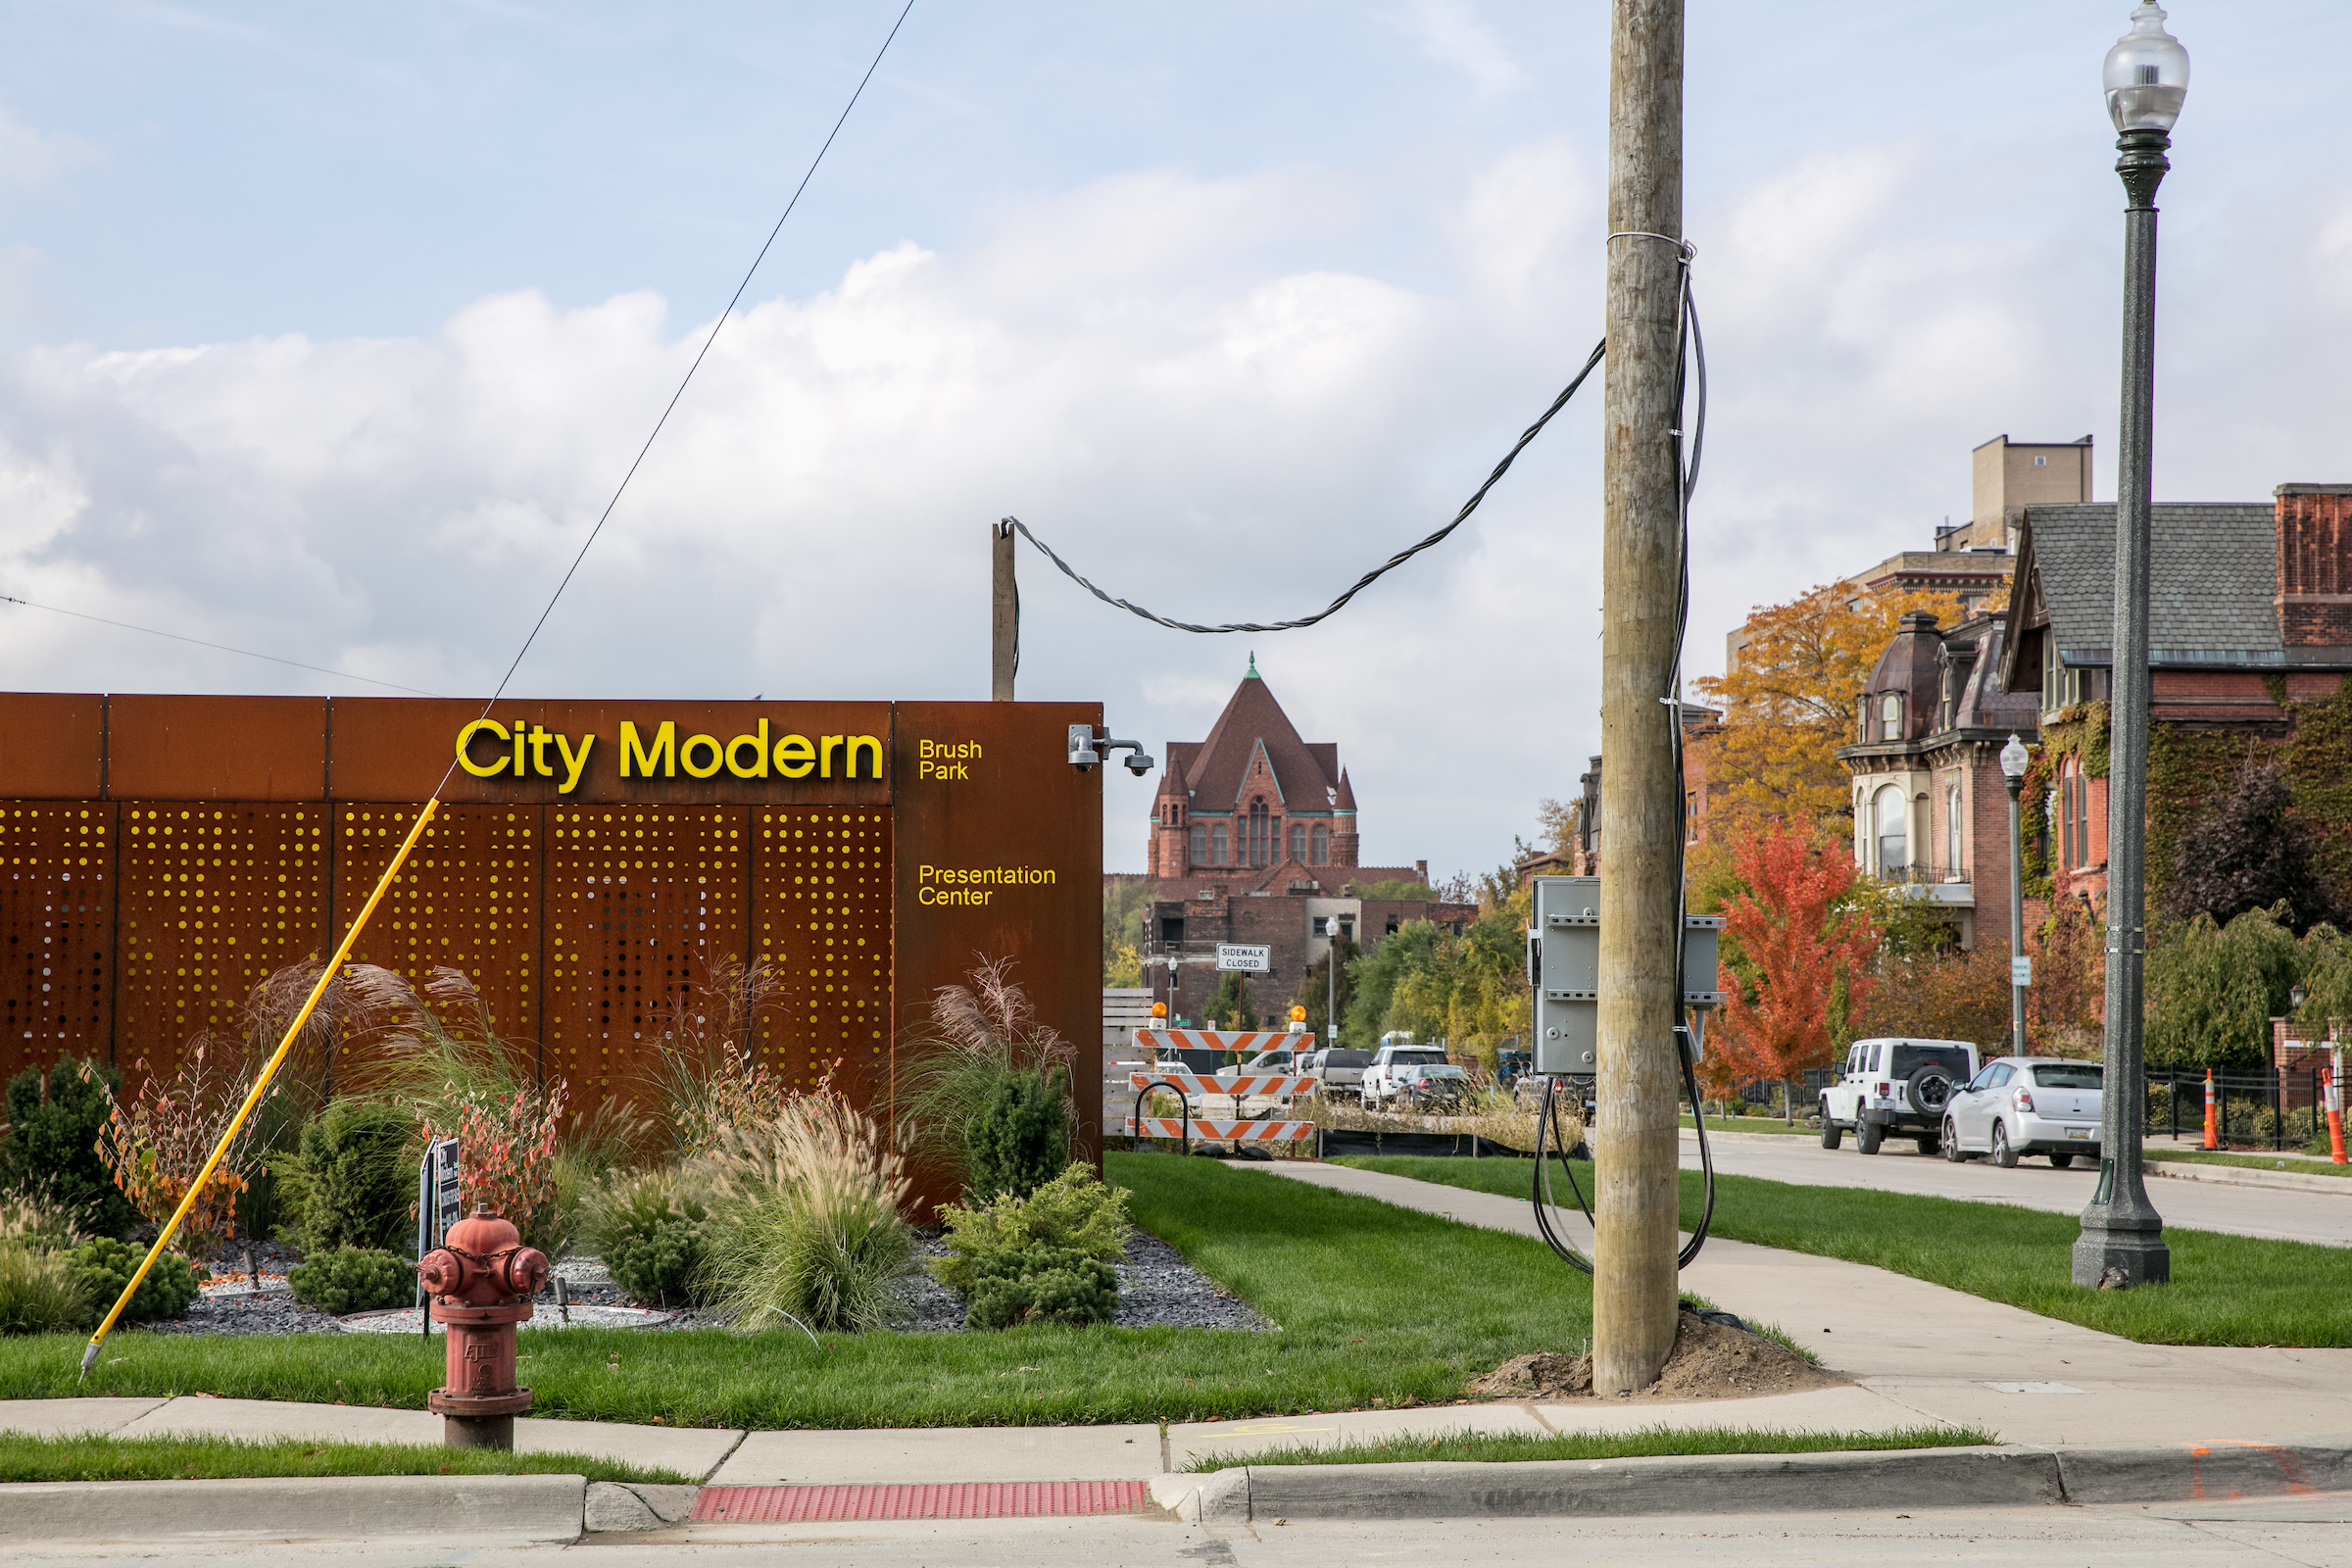 A yellow sign on a rust-colored building advertising City Modern in Brush Park on a sunny day in Detroit.